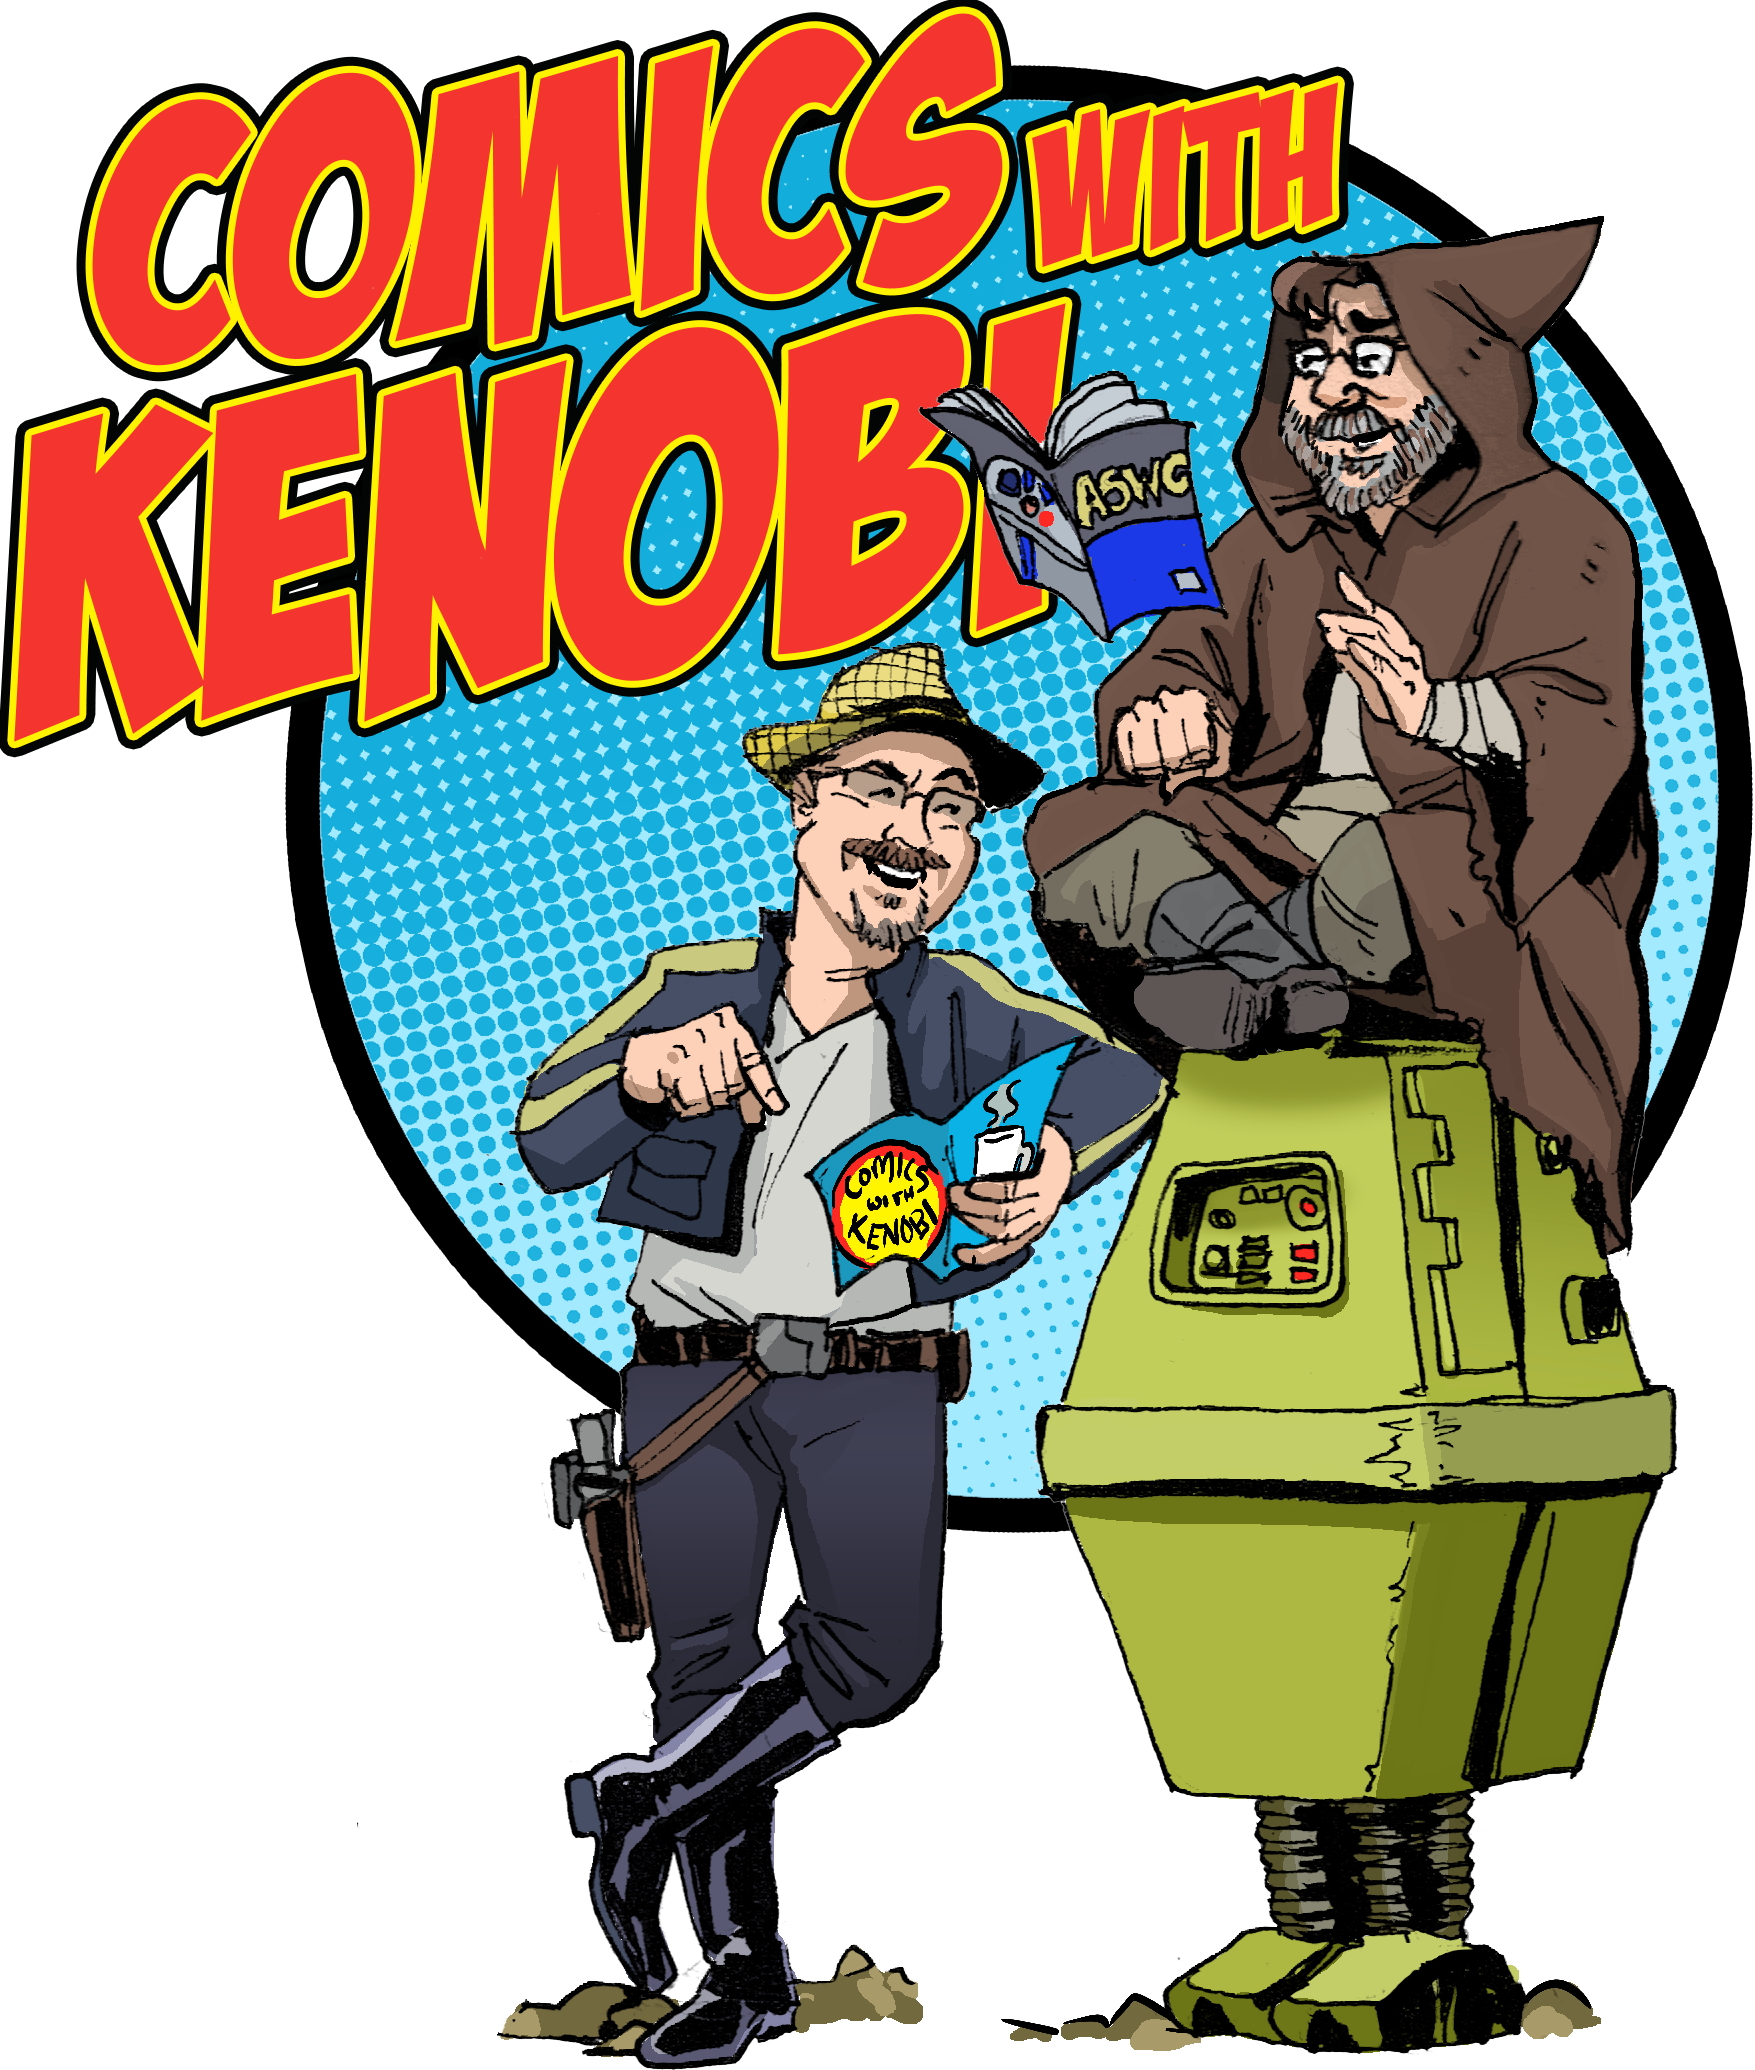 Comics With Kenobi #36 show art